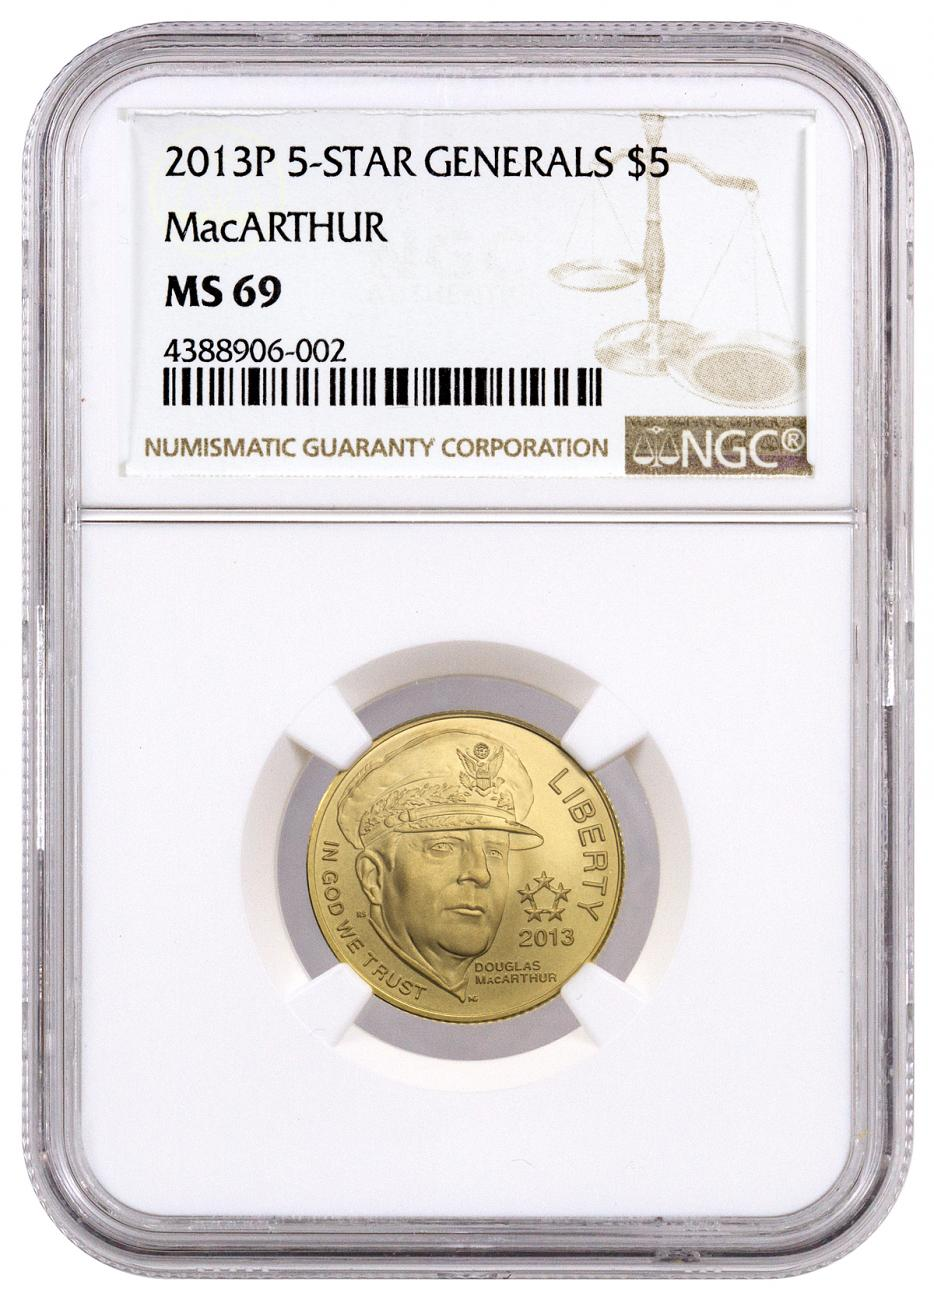 2013-P Five Star Generals - MacArthur $5 Gold Commemorative Coin NGC MS69